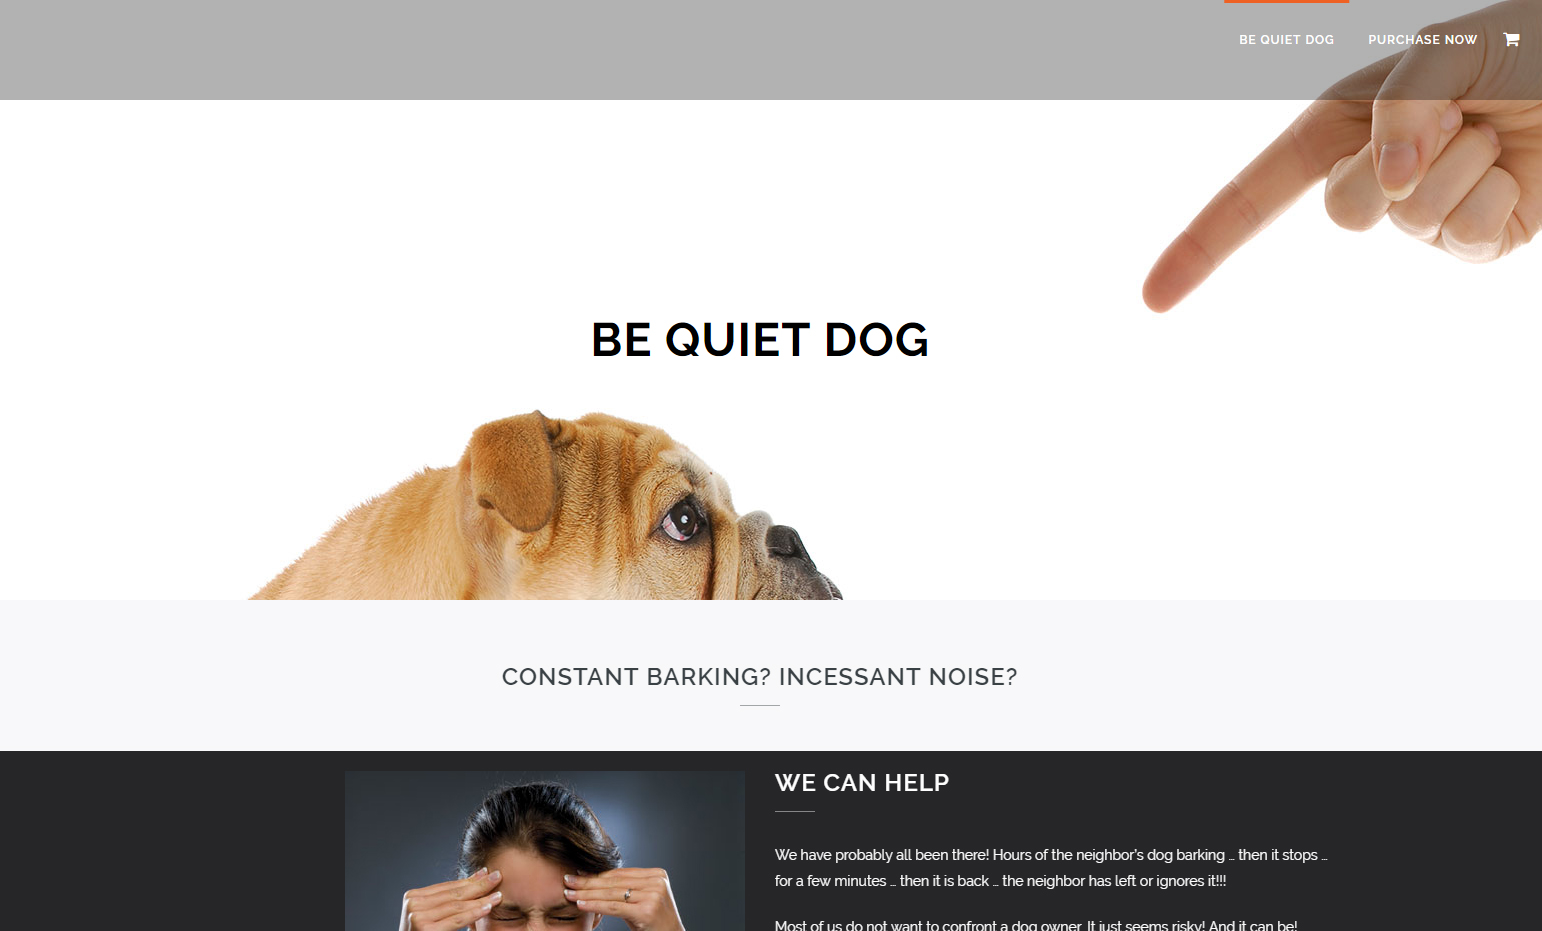 Cute dog looking up at scolding finger